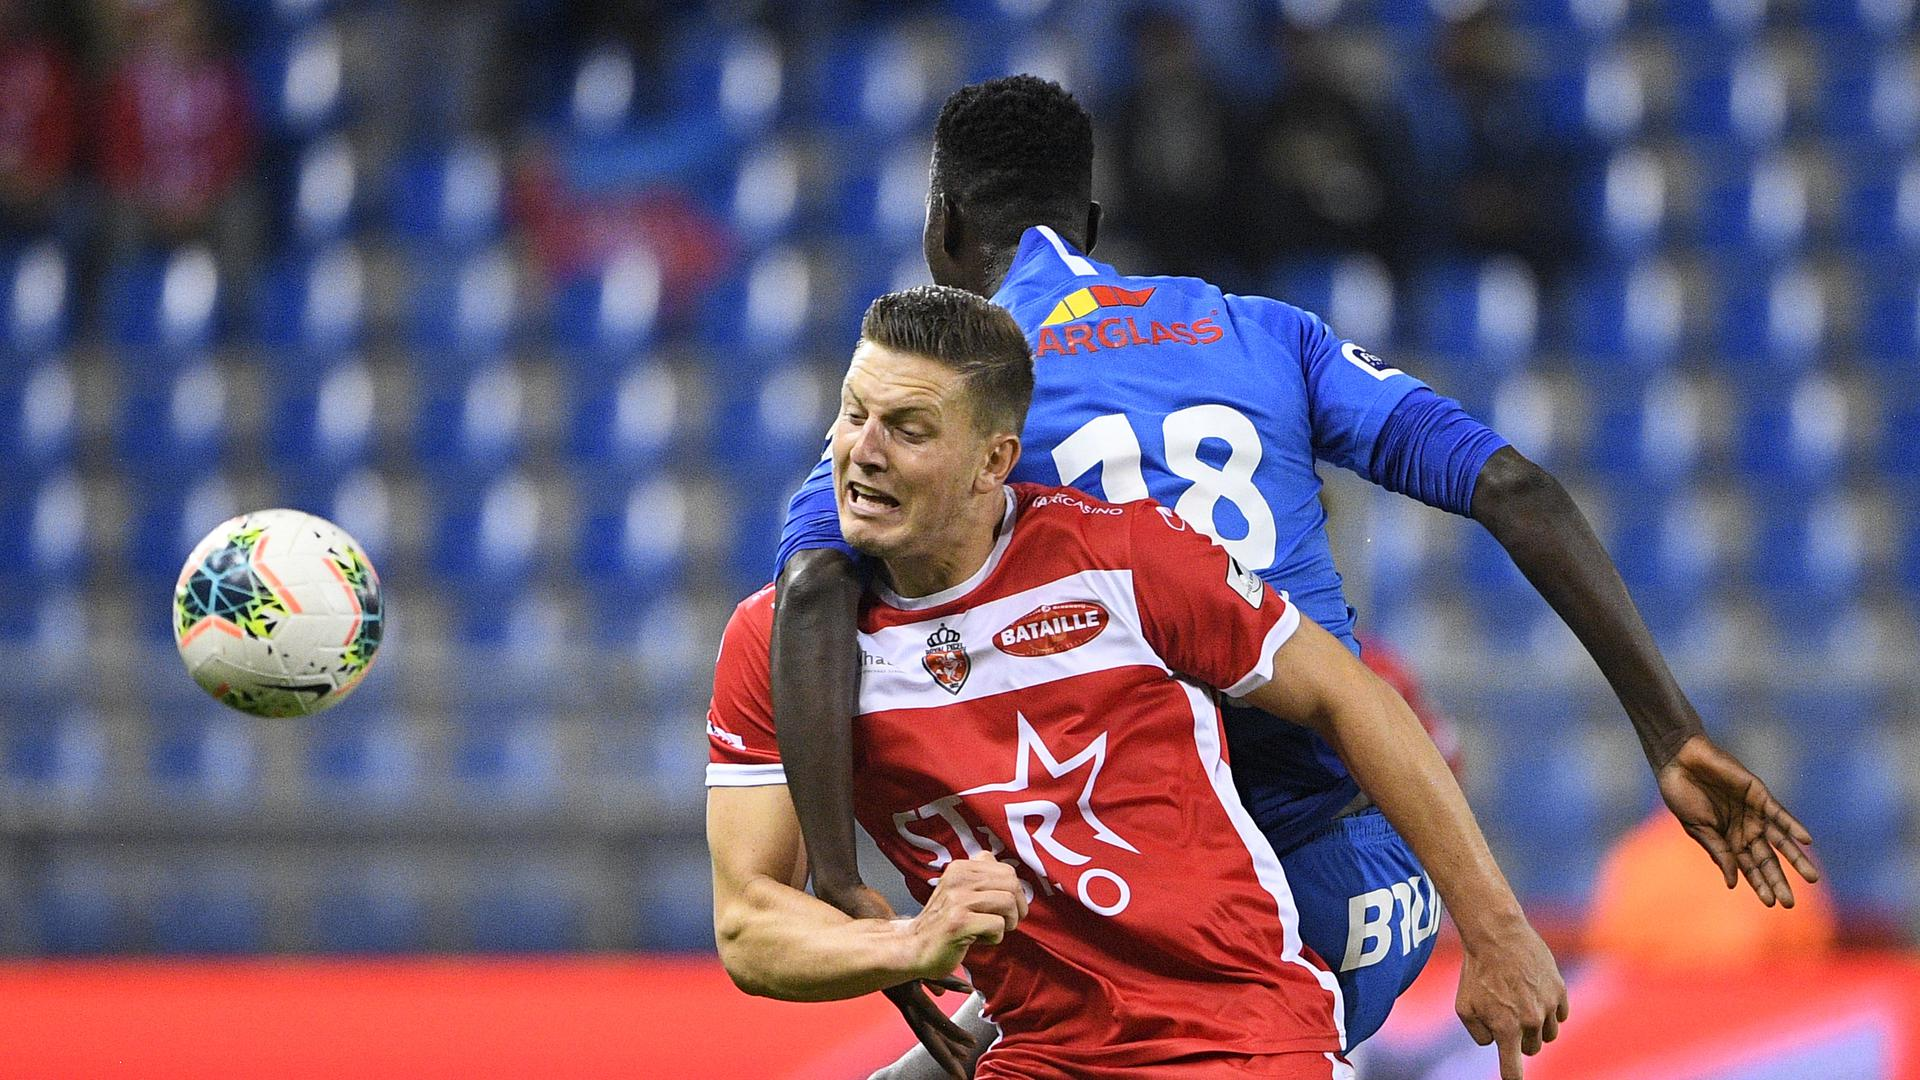 Mouscron s Kevin Wimmer and Genk s Paul Onuachu fight for the ball during a soccer match between RC Genk and Royal Excel Mouscron, Sunday 06 October 2019 in Genk, on day ten of the Jupiler Pro League Belgian soccer championship season 2019-2020. YORICKxJANSENS PUBLICATIONxINxGERxSUIxAUTxONLY x05681325x